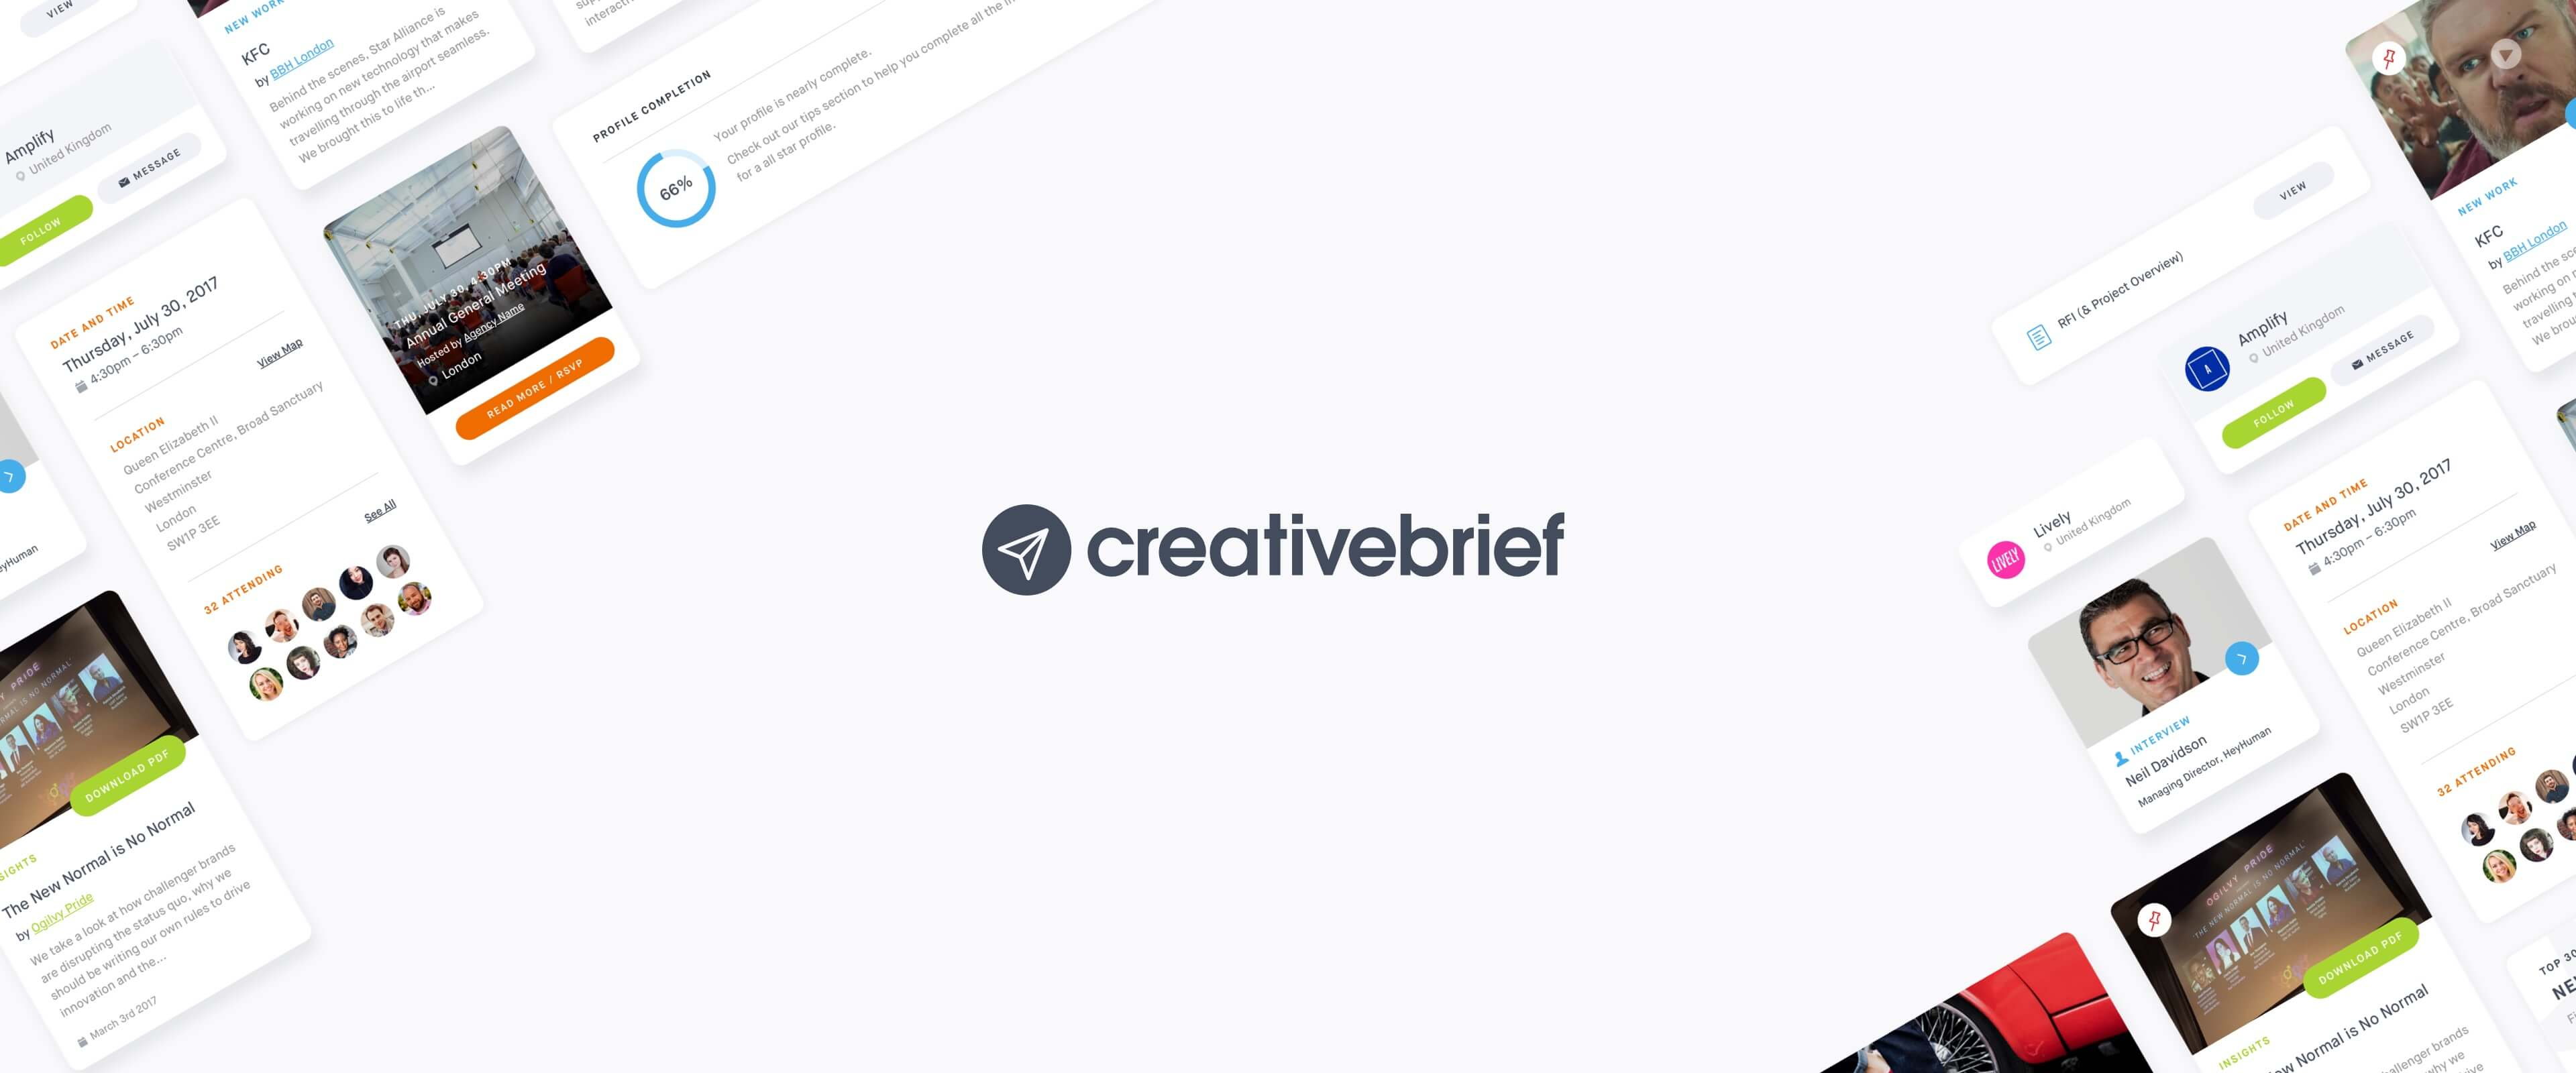 Philip_Mawer_Creativebrief_Header